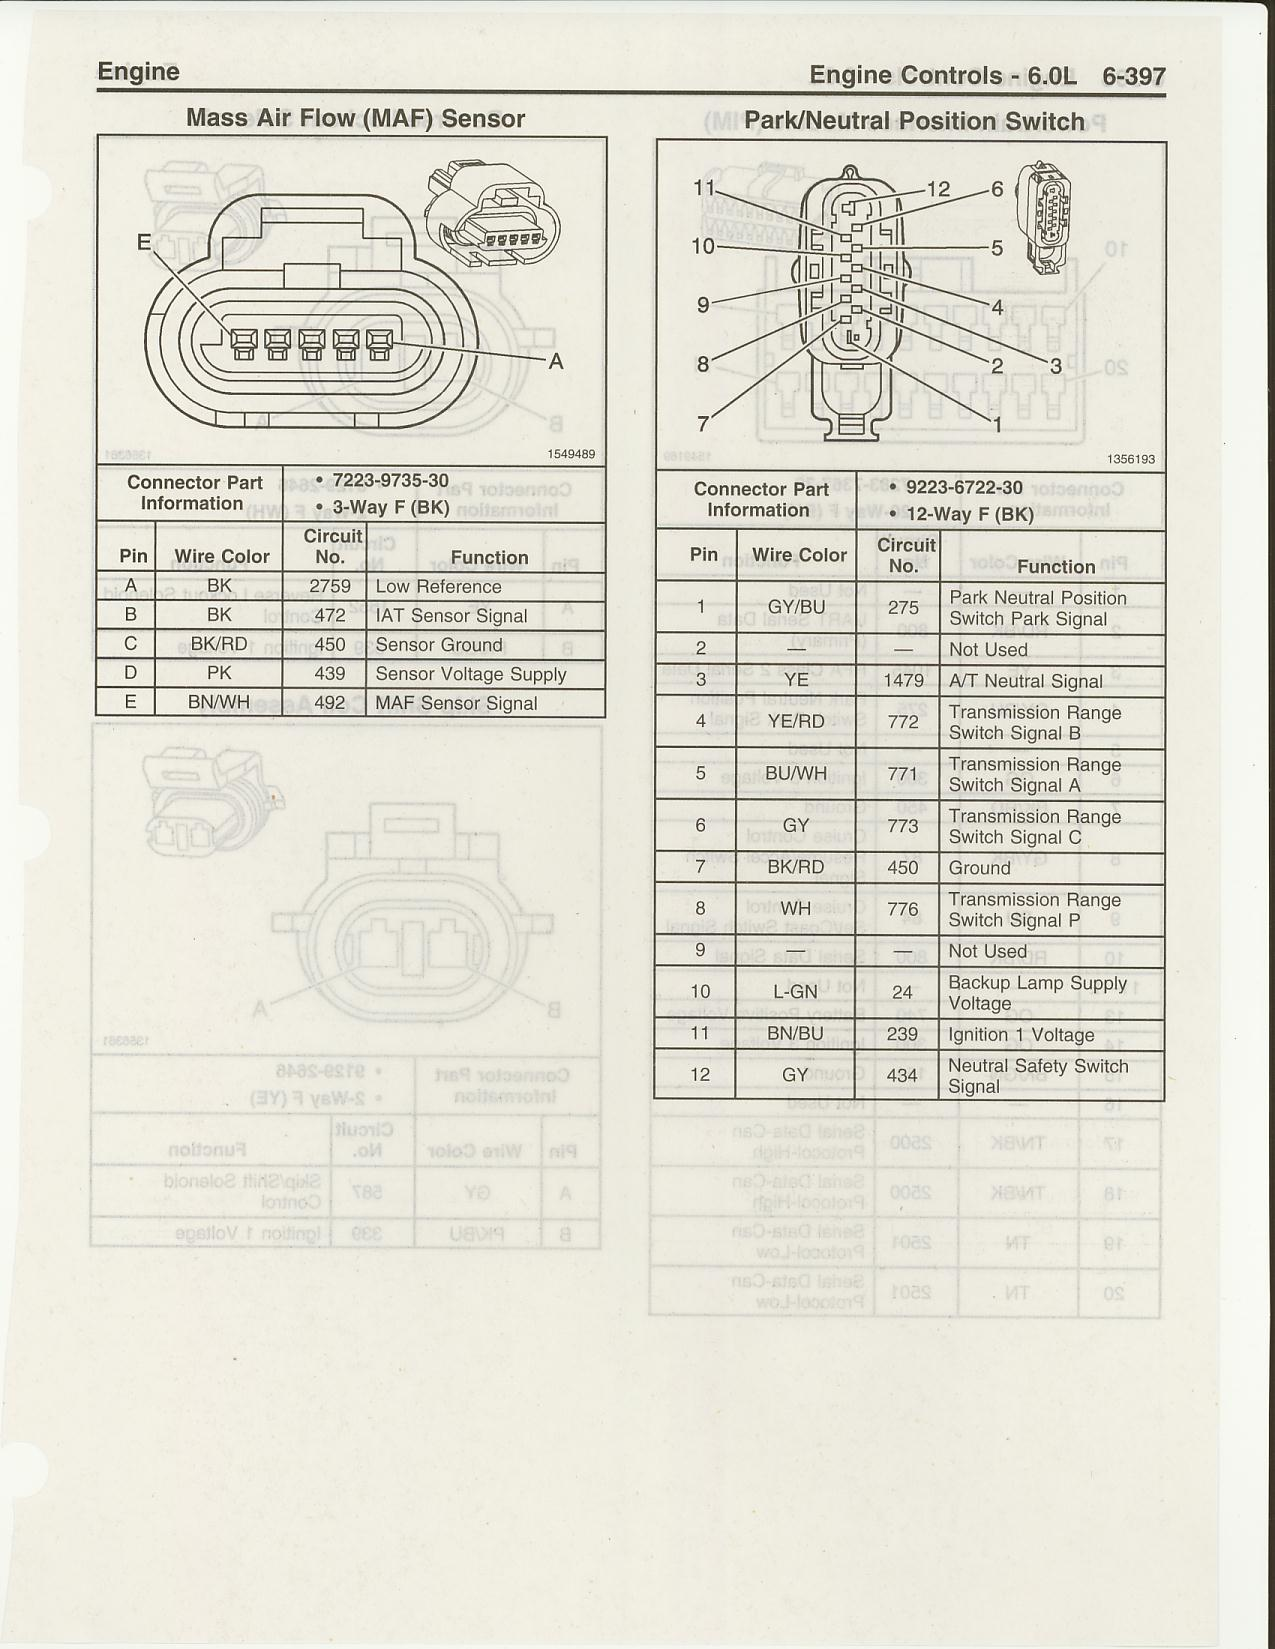 Cadillac Cts Engine Wiring Diagram Simple Guide About 2003 Harness Images Gallery Ls2 Maf Sensor Pinouts Ls1tech Camaro And